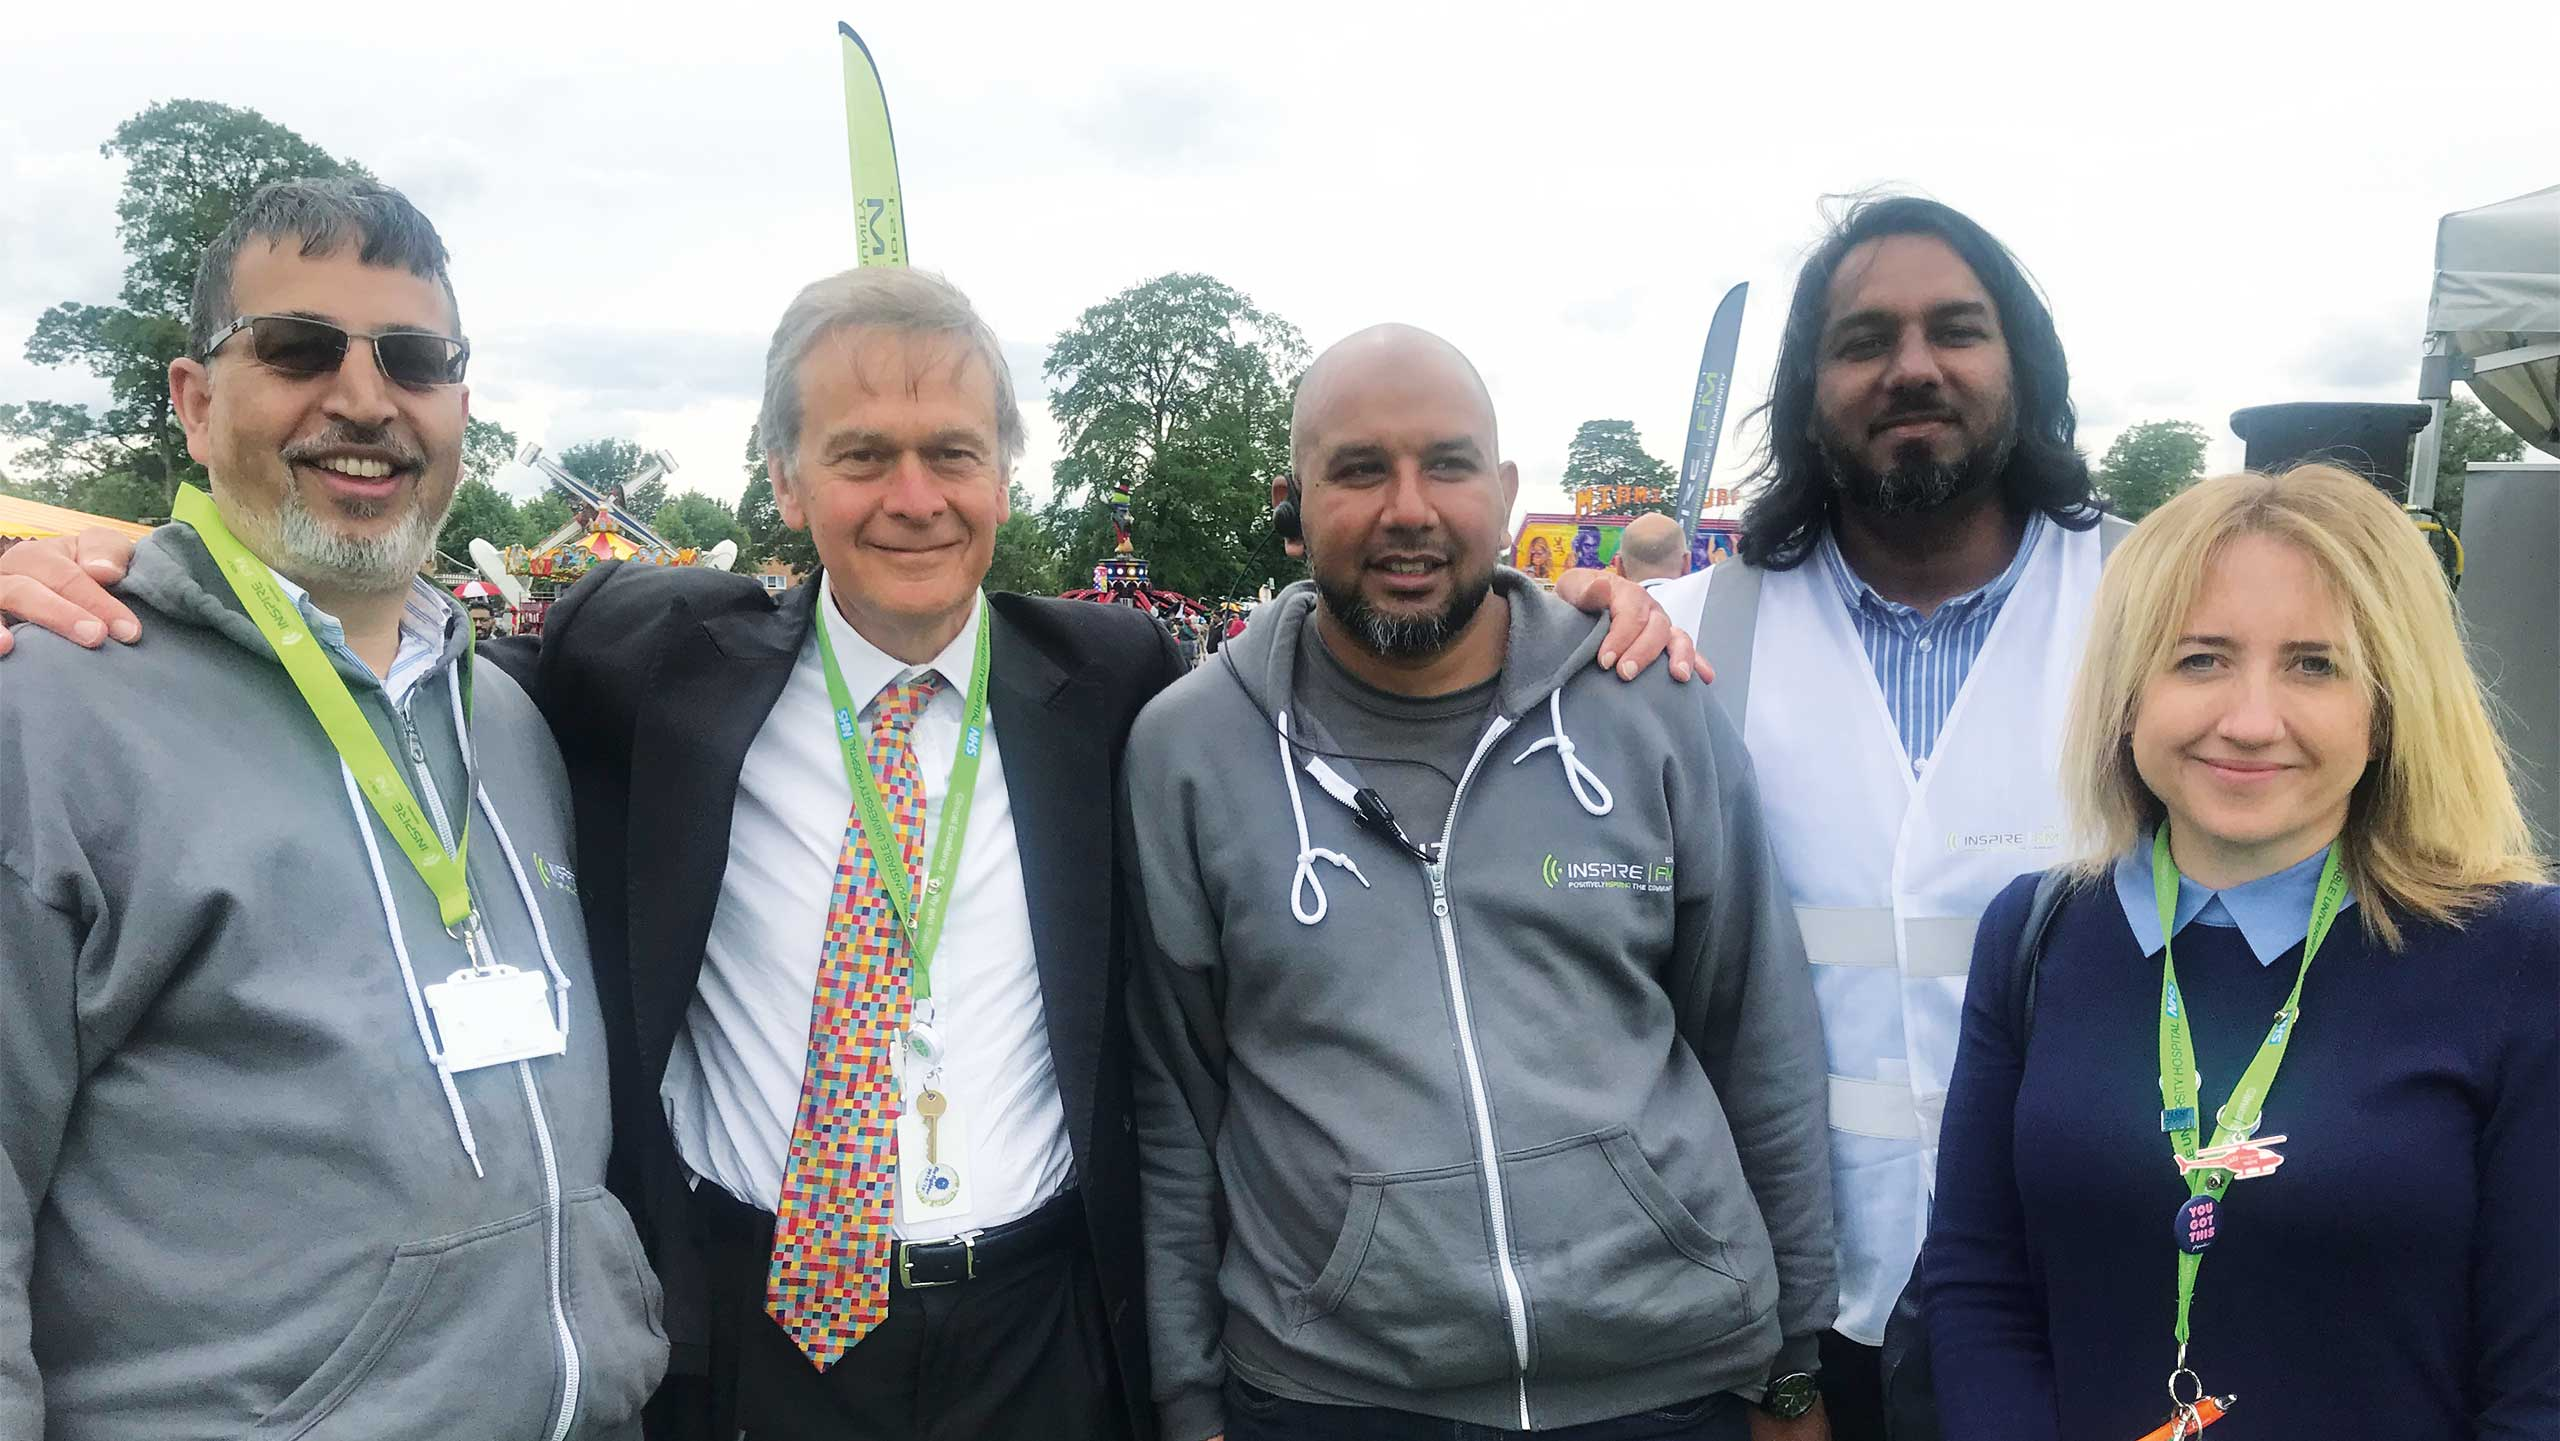 Tariq and members of the Inspire Eid organising committee along with Simon Linnett and Sarah Amexheta, from the Luton & Dunstable Hospital Helipad Appeal.